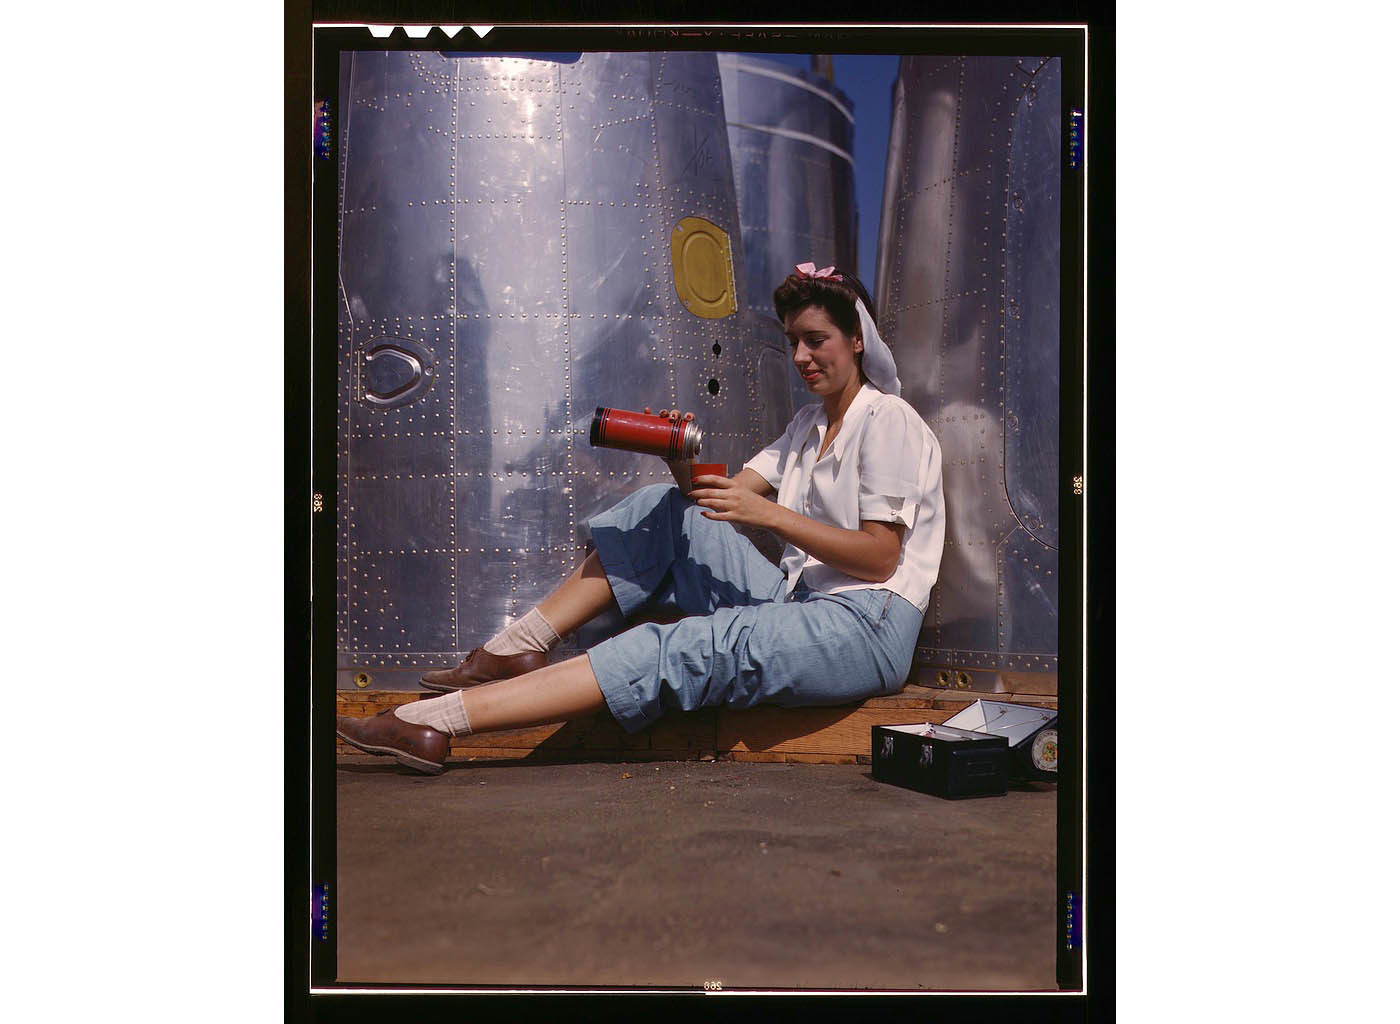 Girl worker at lunch also absorbing California sunshine, Douglas Aircraft Company, Long Beach, Calif